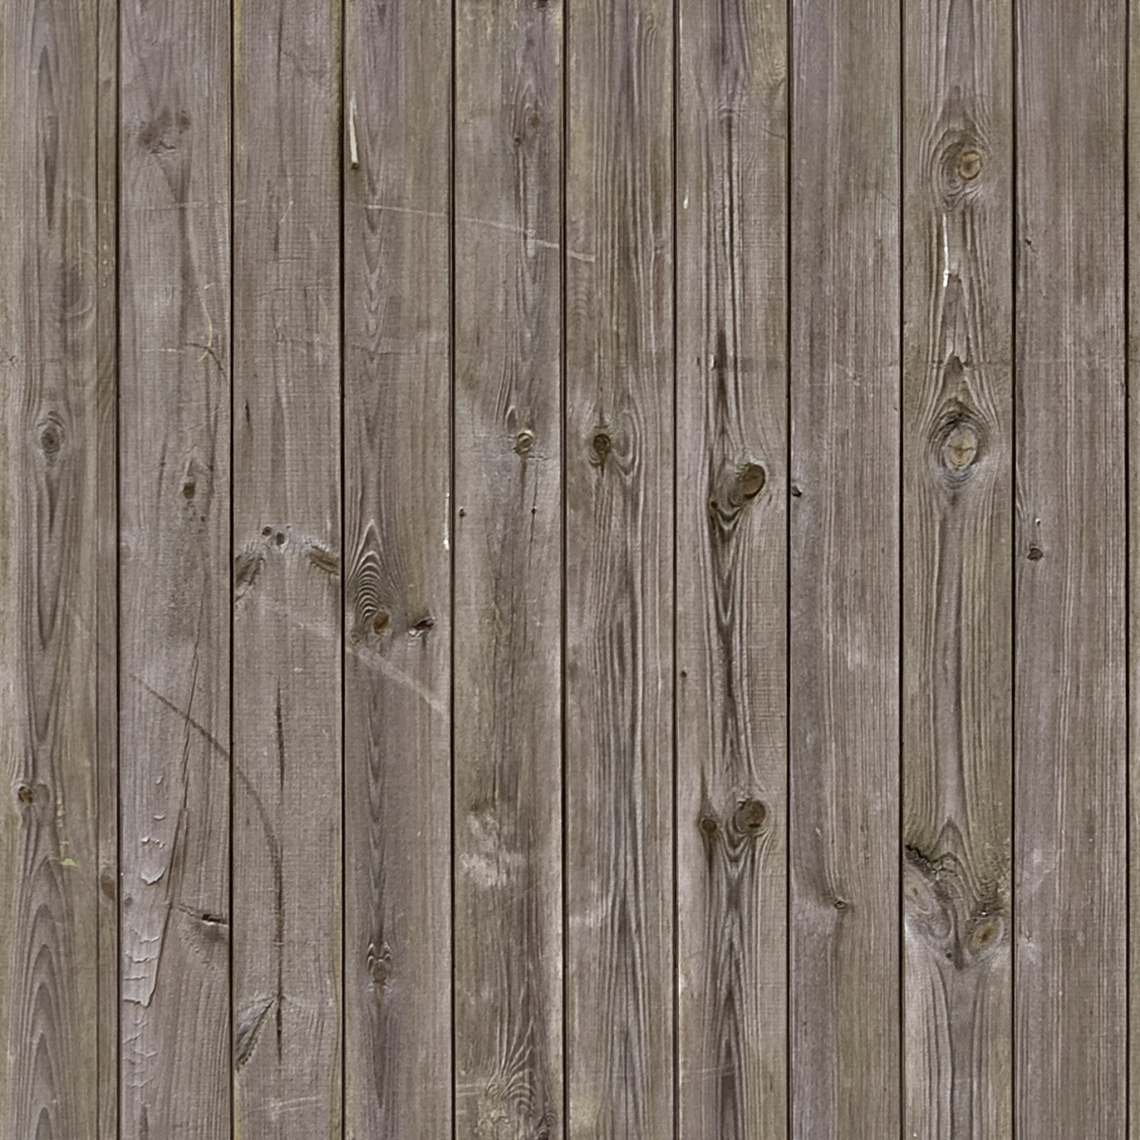 tileable wood plank texture. Seamless Wood Planks Tileable Plank Texture O